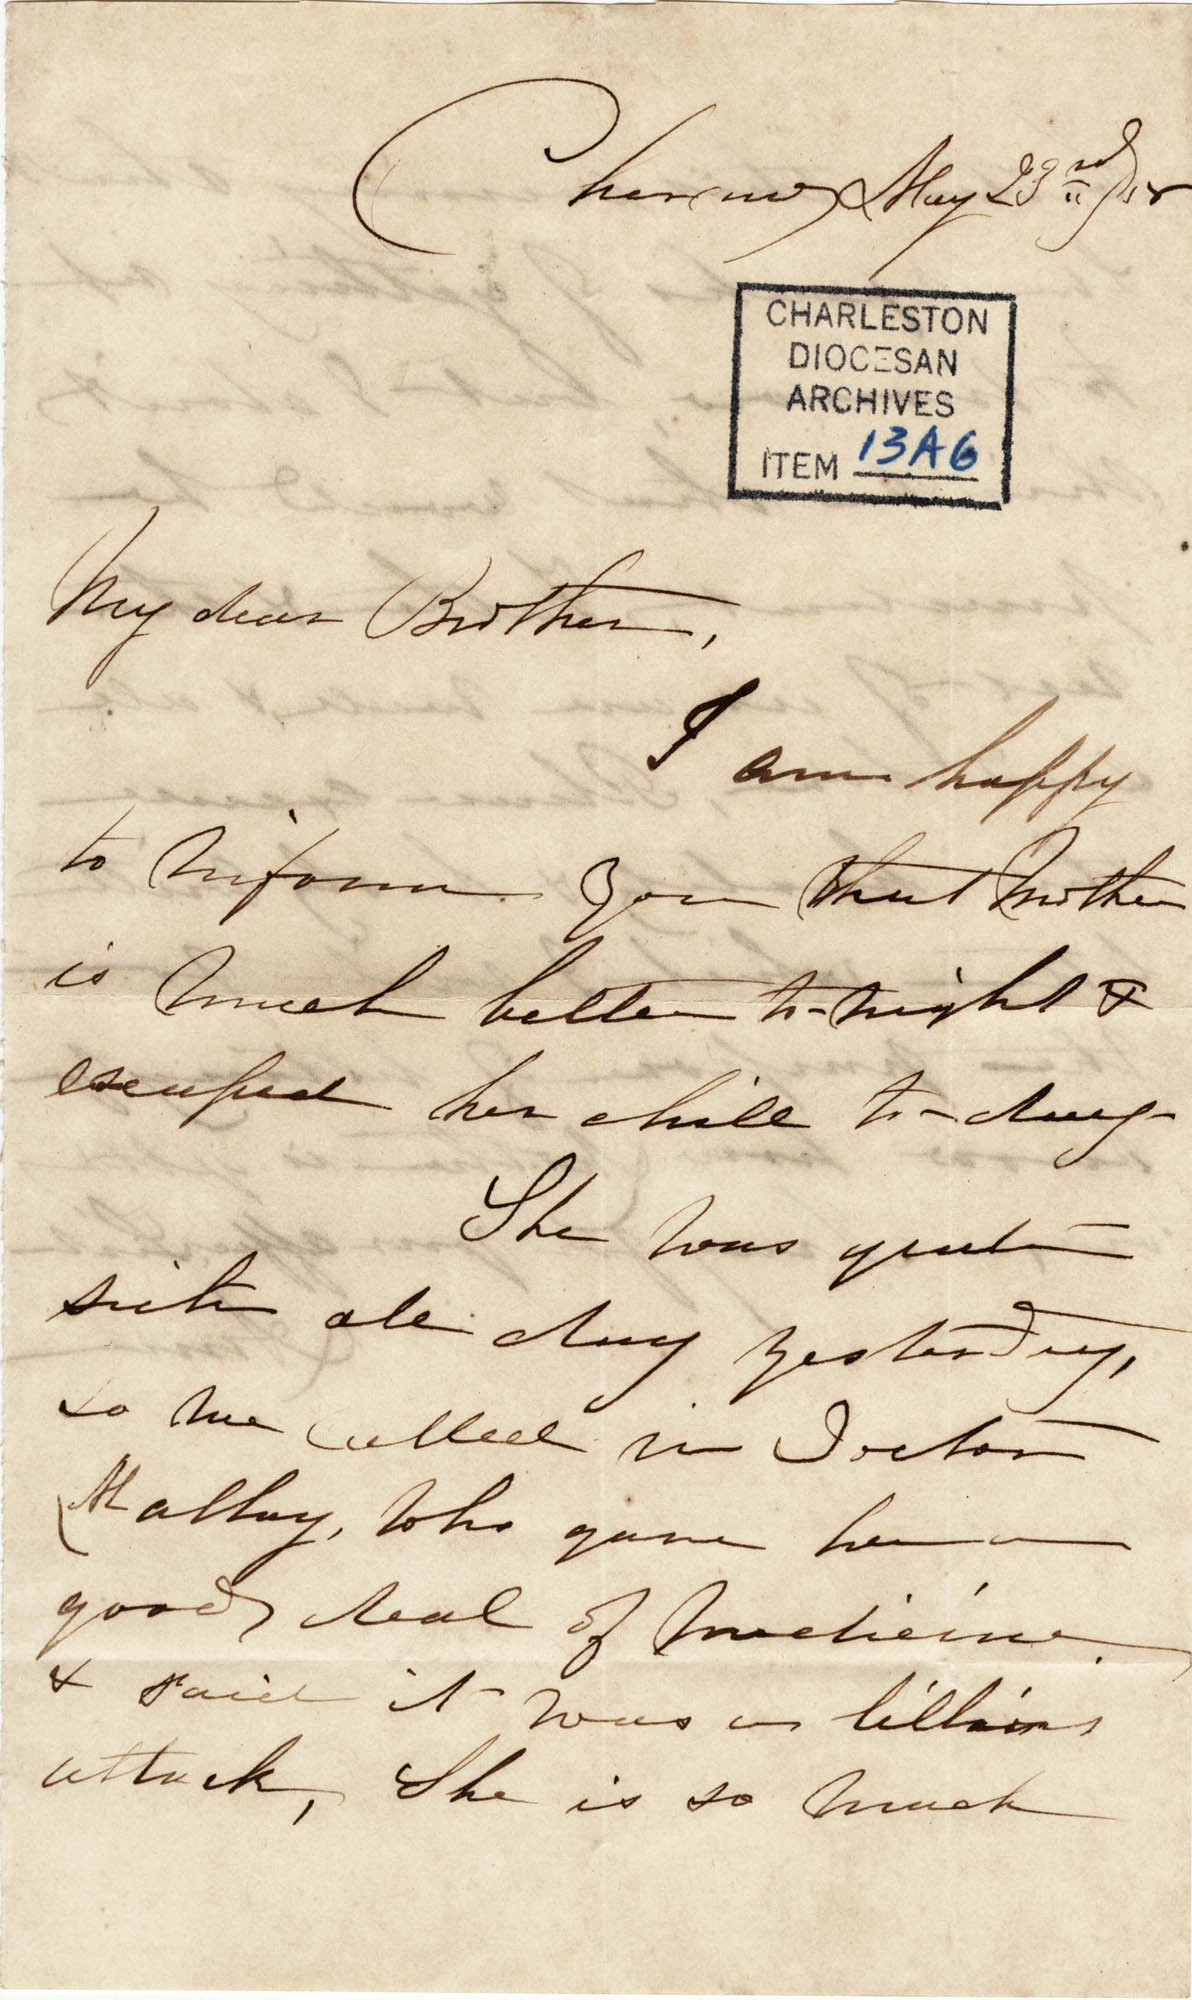 006. Anna Lynch to Bp Patrick Lynch -- May 23, 1858